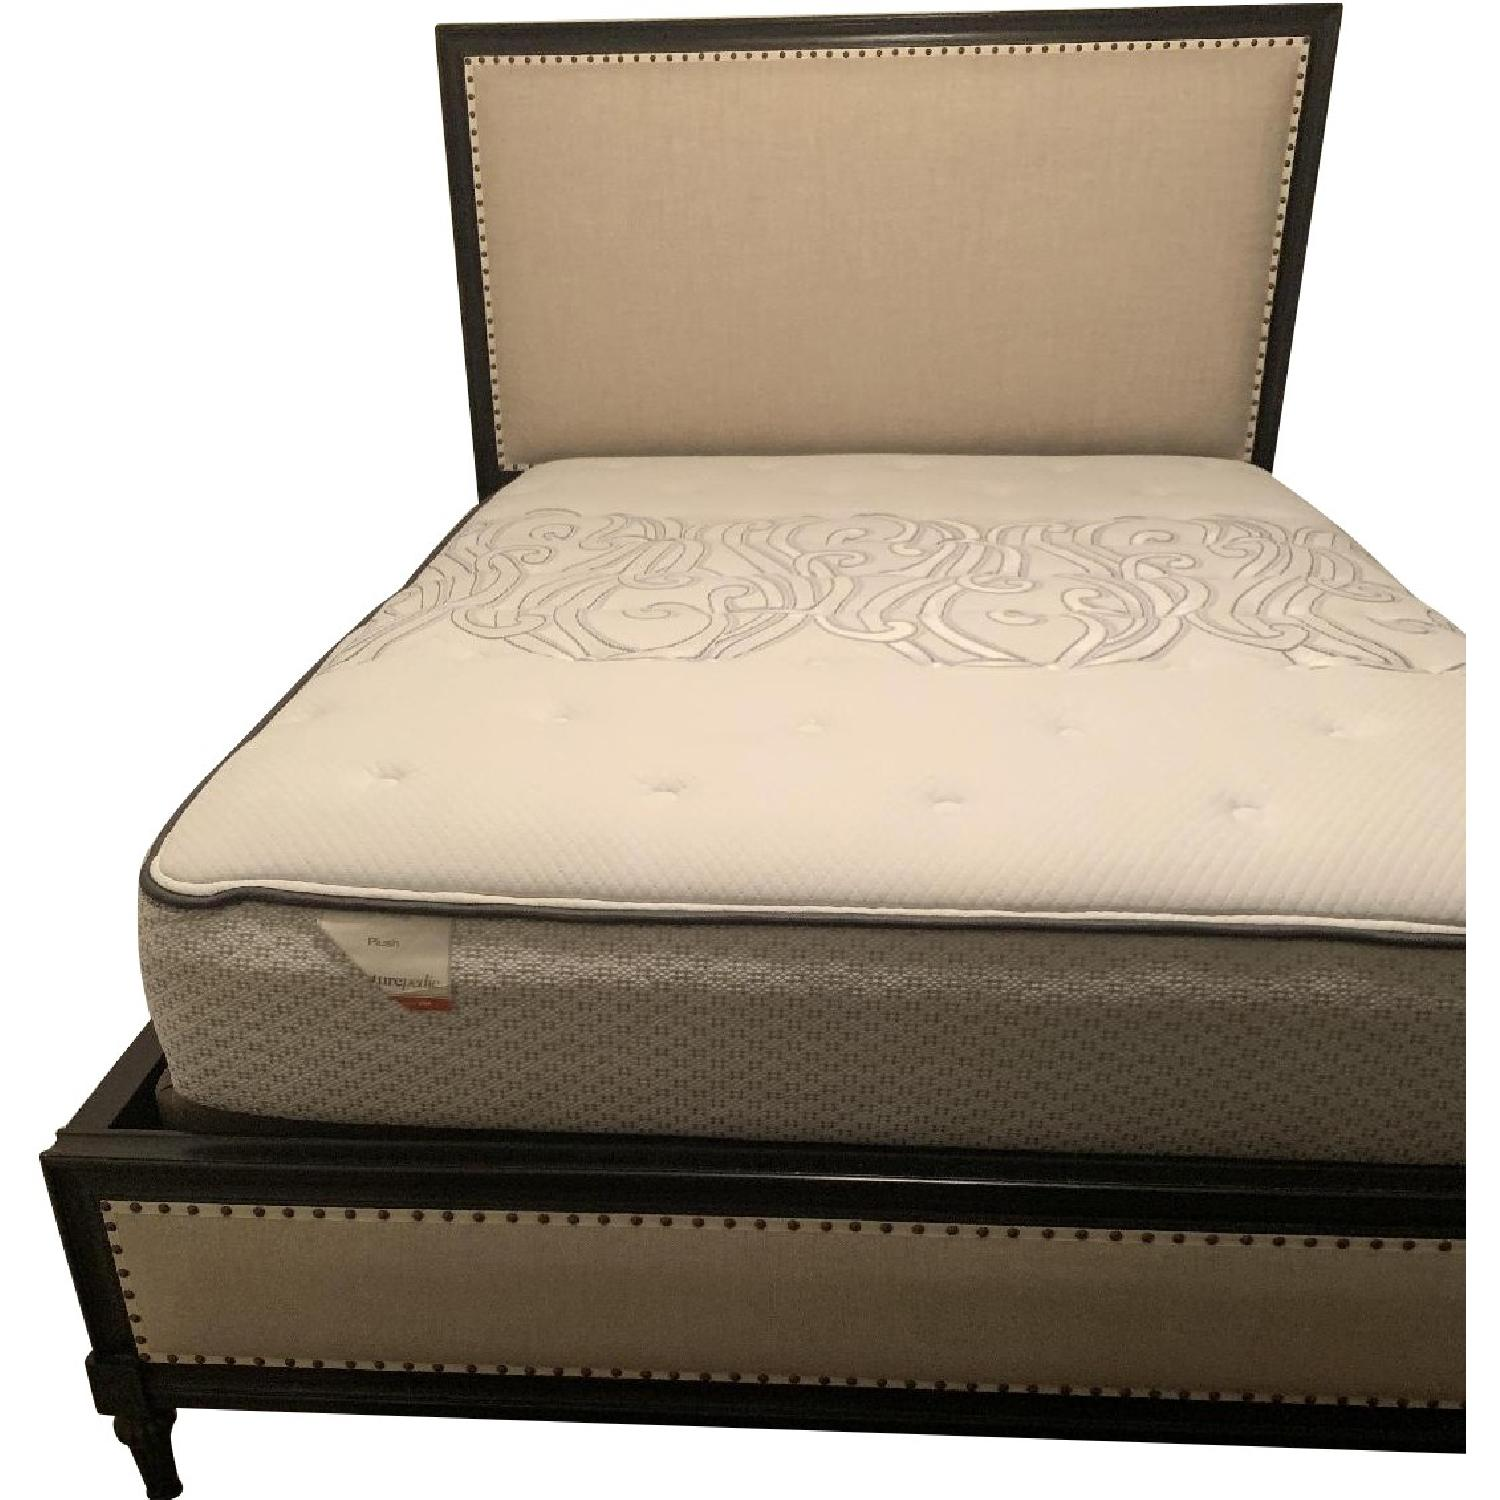 Restoration Hardware Maison Panel Fabric Queen Bed